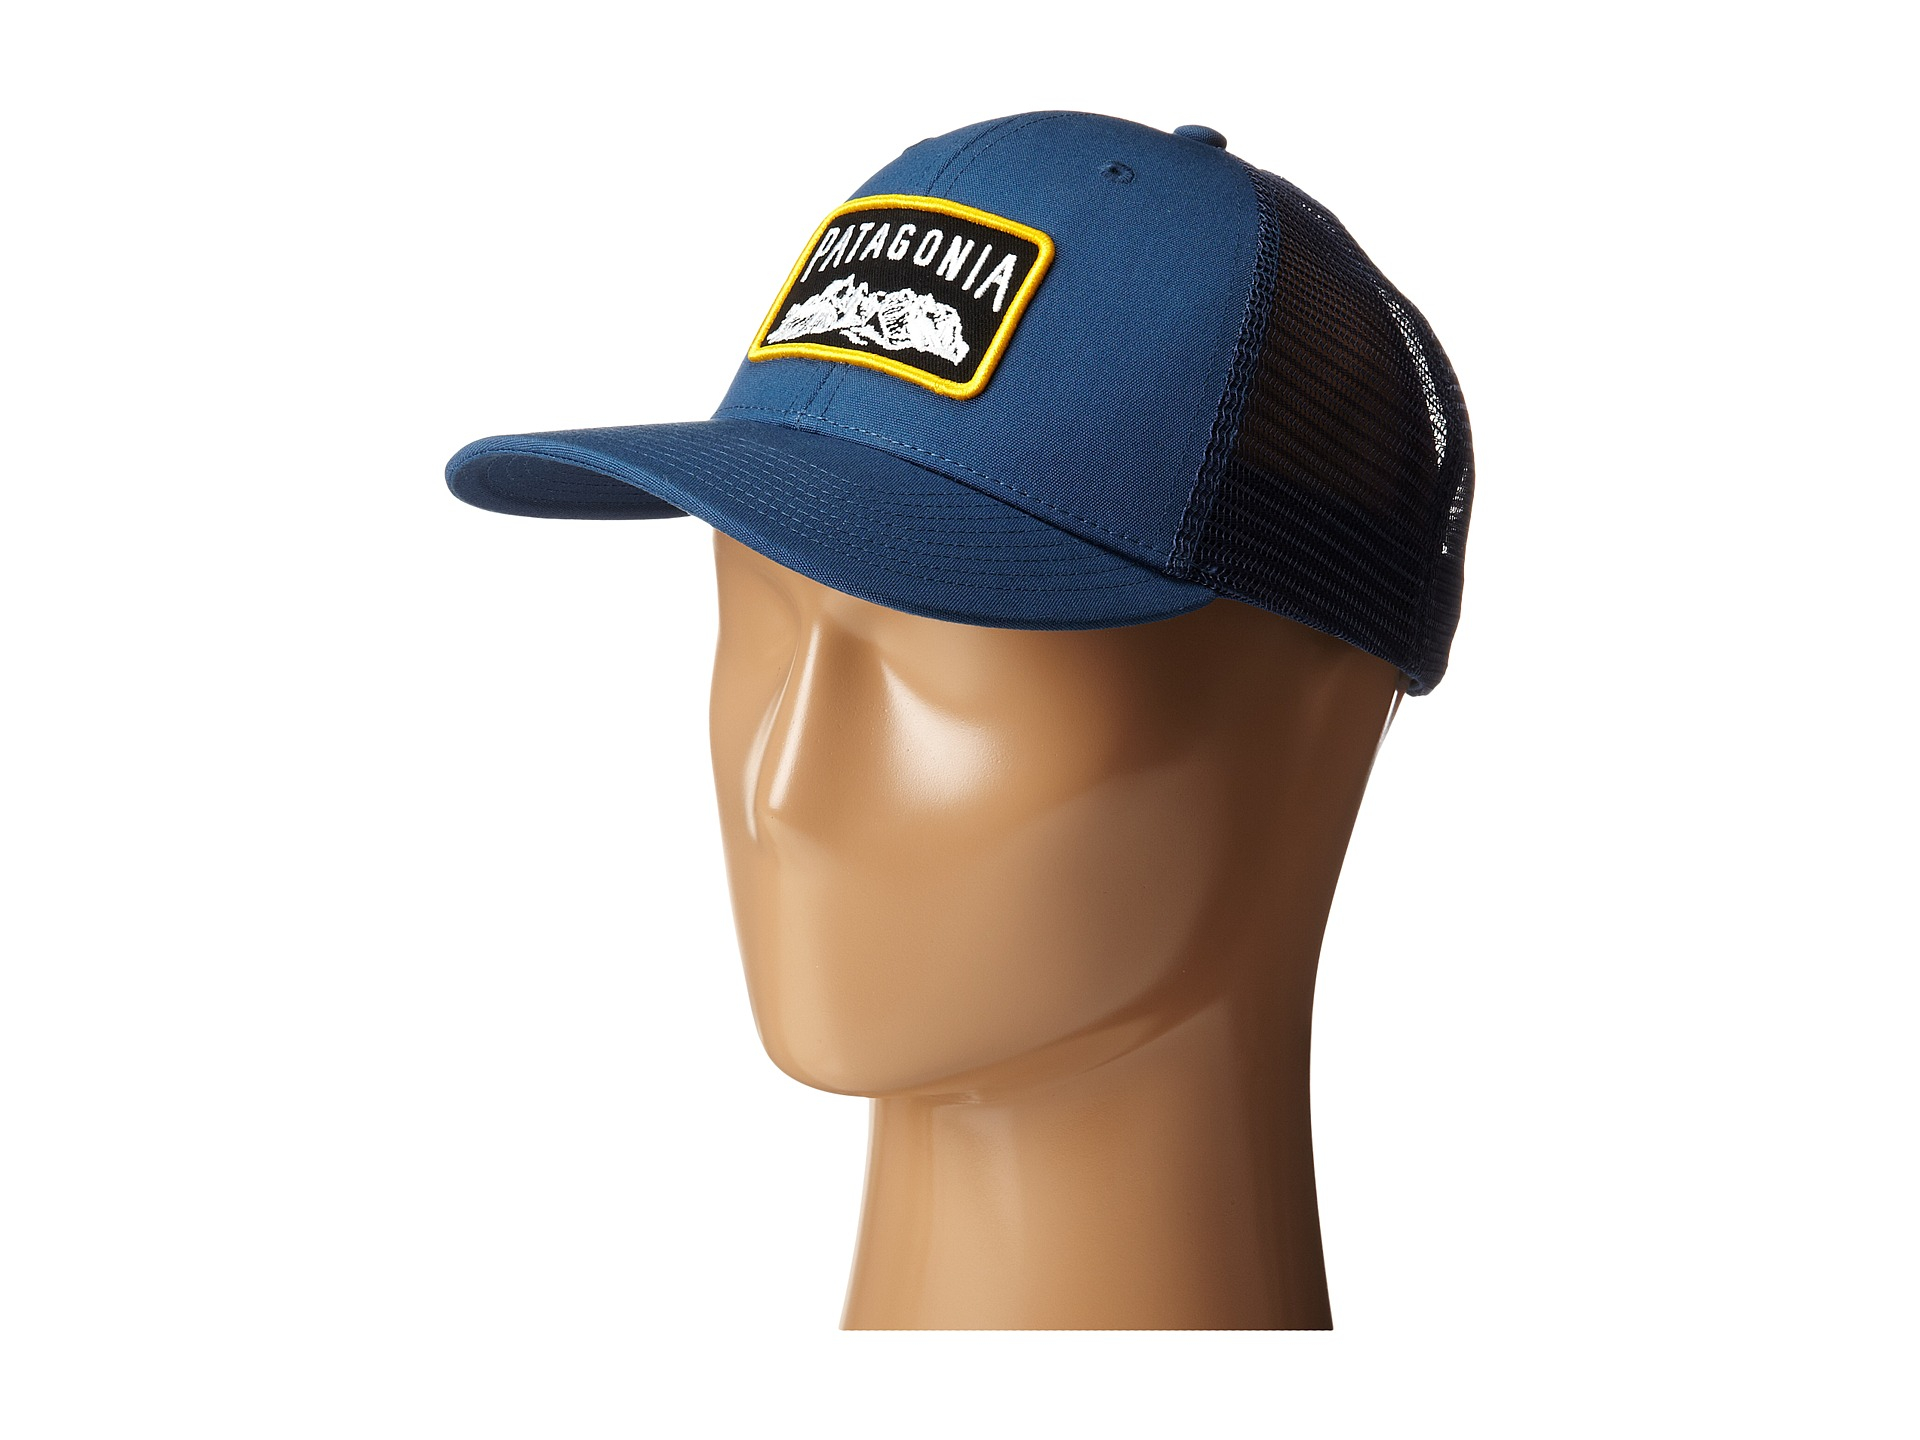 bbe70595275 Patagonia Climb A Mountain Trucker Hat in Blue - Lyst